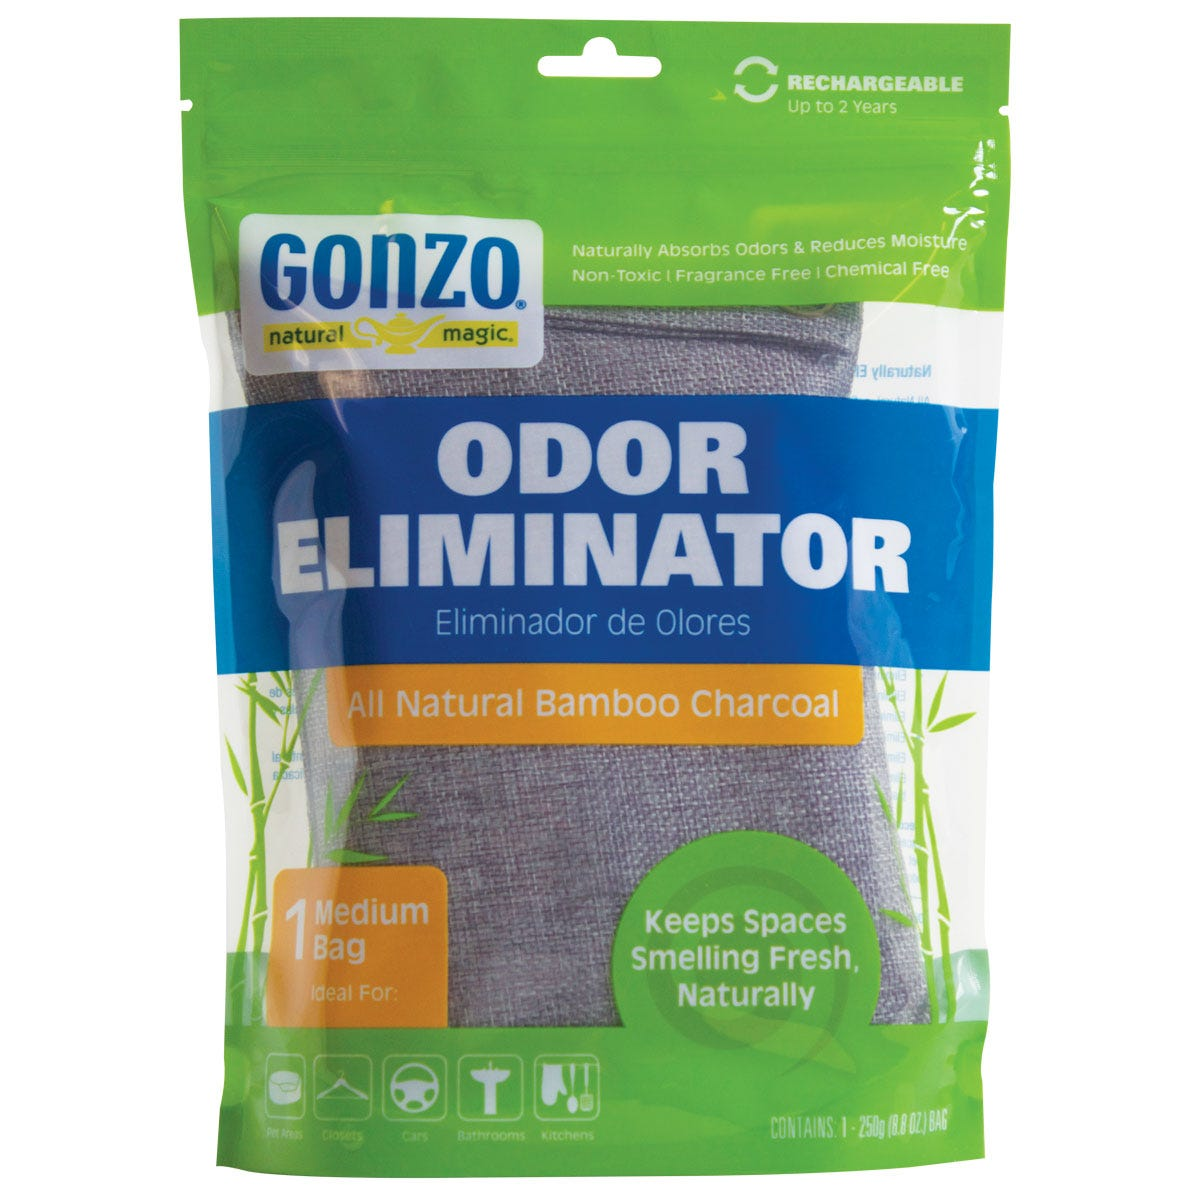 https://googone.com/media/catalog/product/b/a/bamboo-charcoal-odor-eliminator-medium_front.jpg